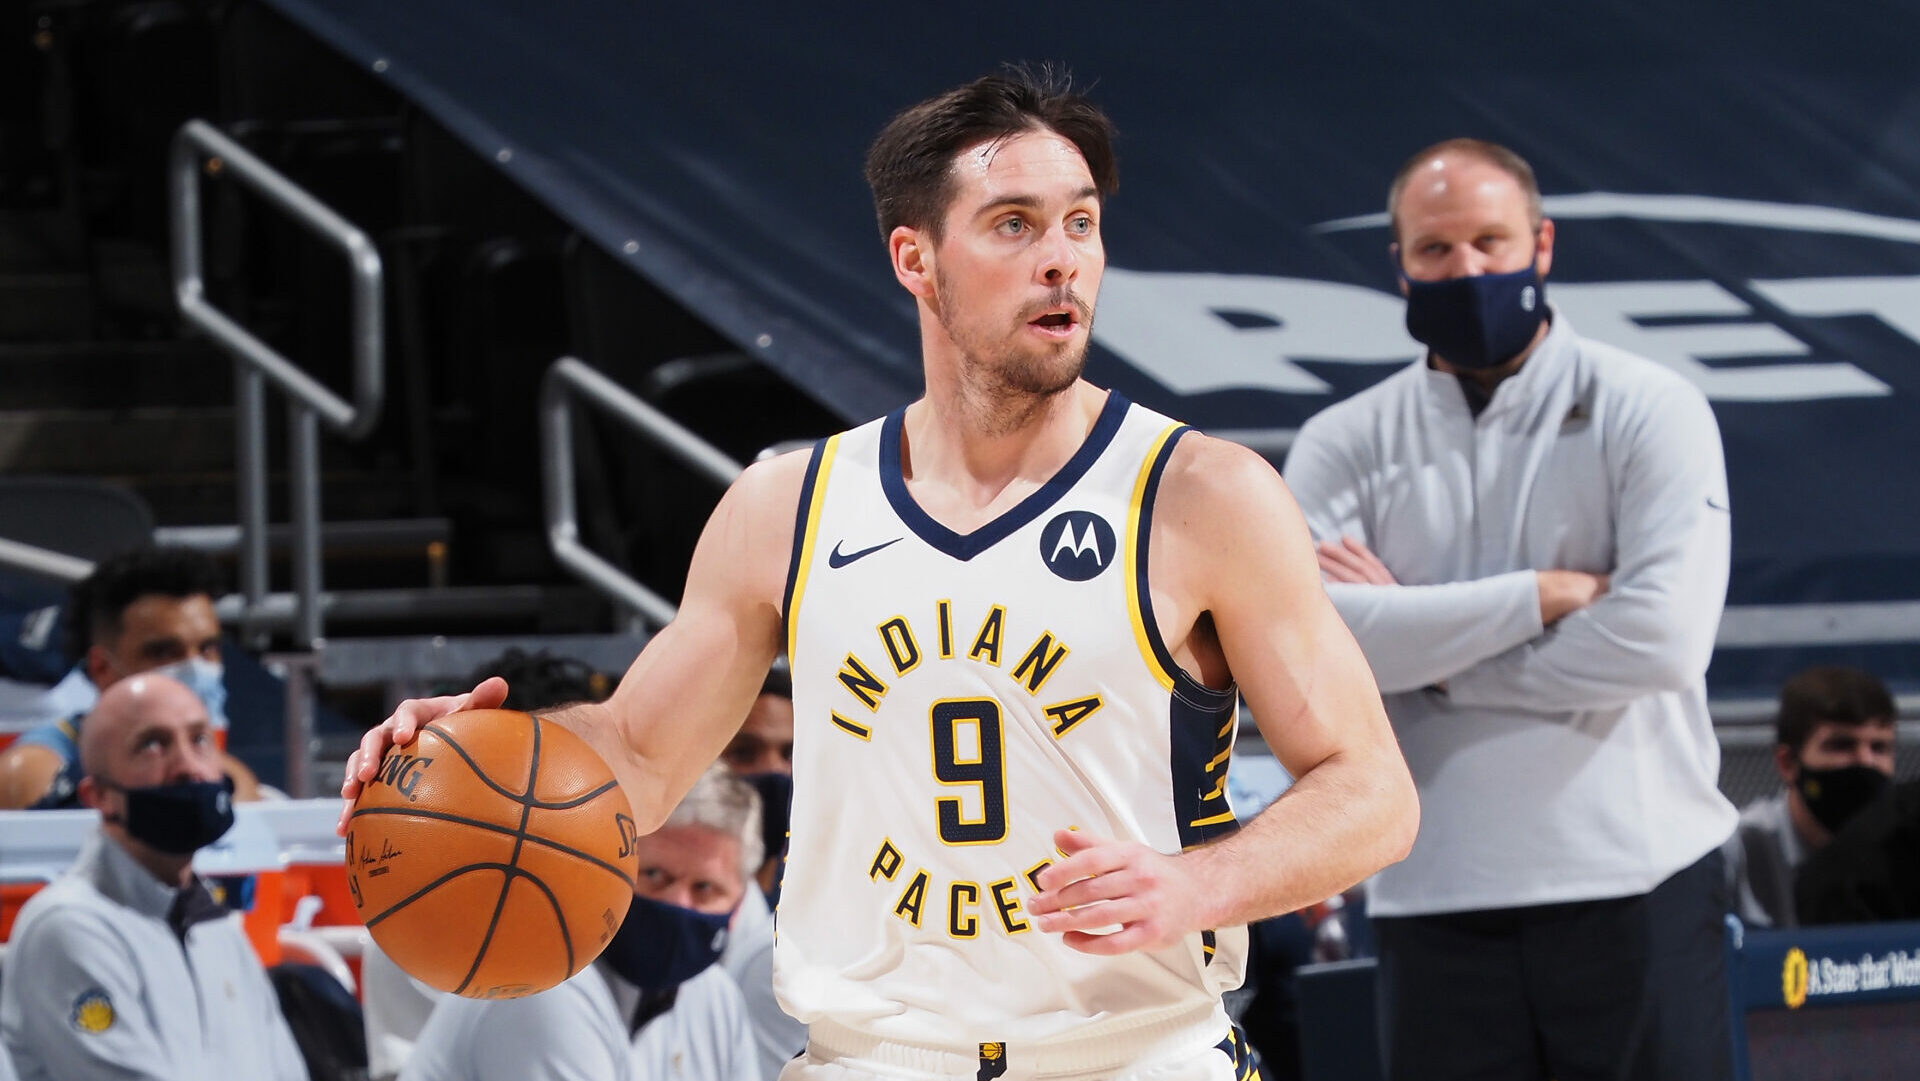 T.J. McConnell sets NBA record with 9 steals in first half